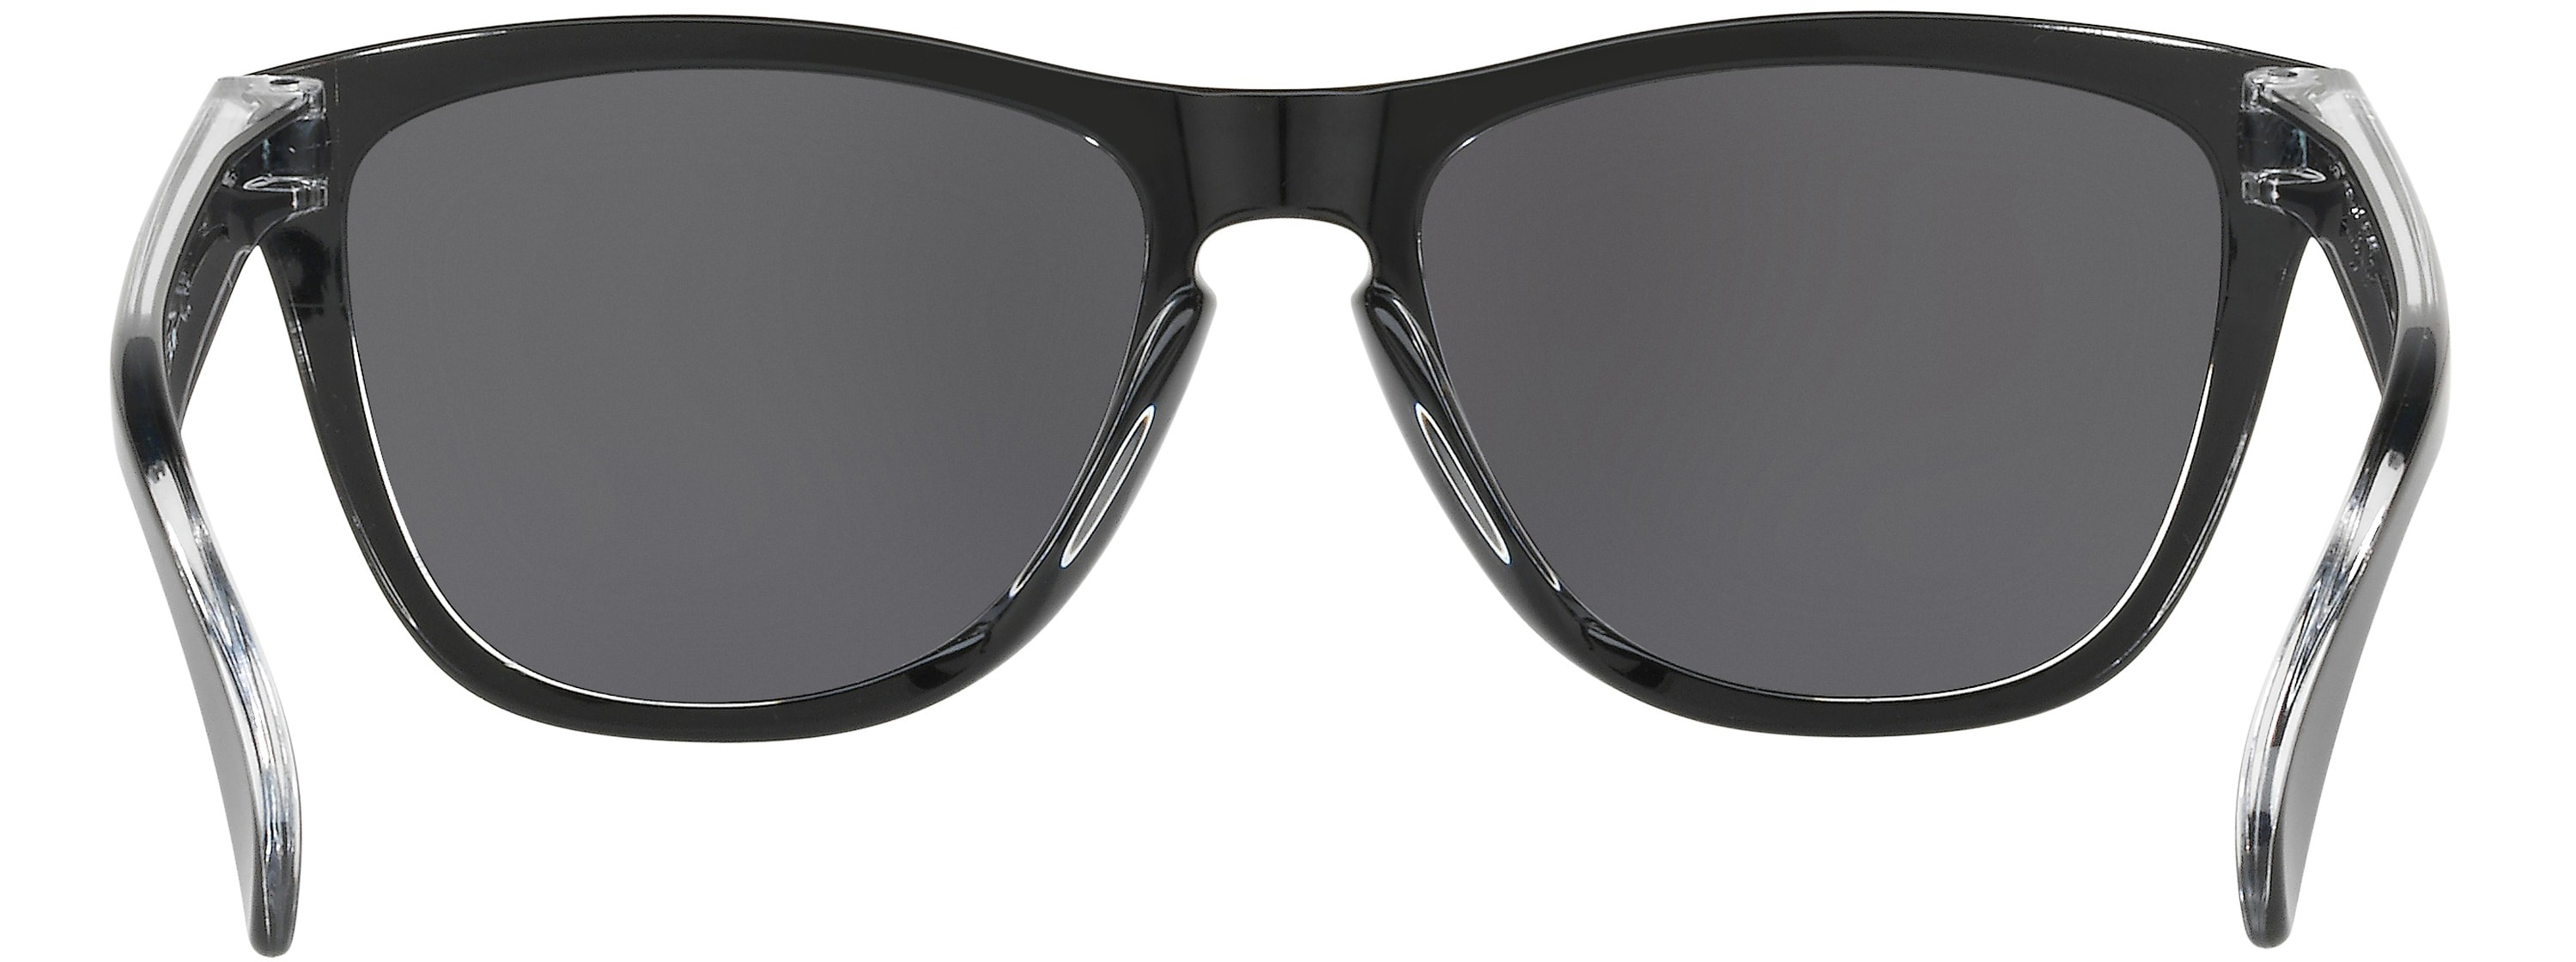 26e8a6df231 Oakley Frogskins Eclipse Collection Sunglasses - thumbnail 3